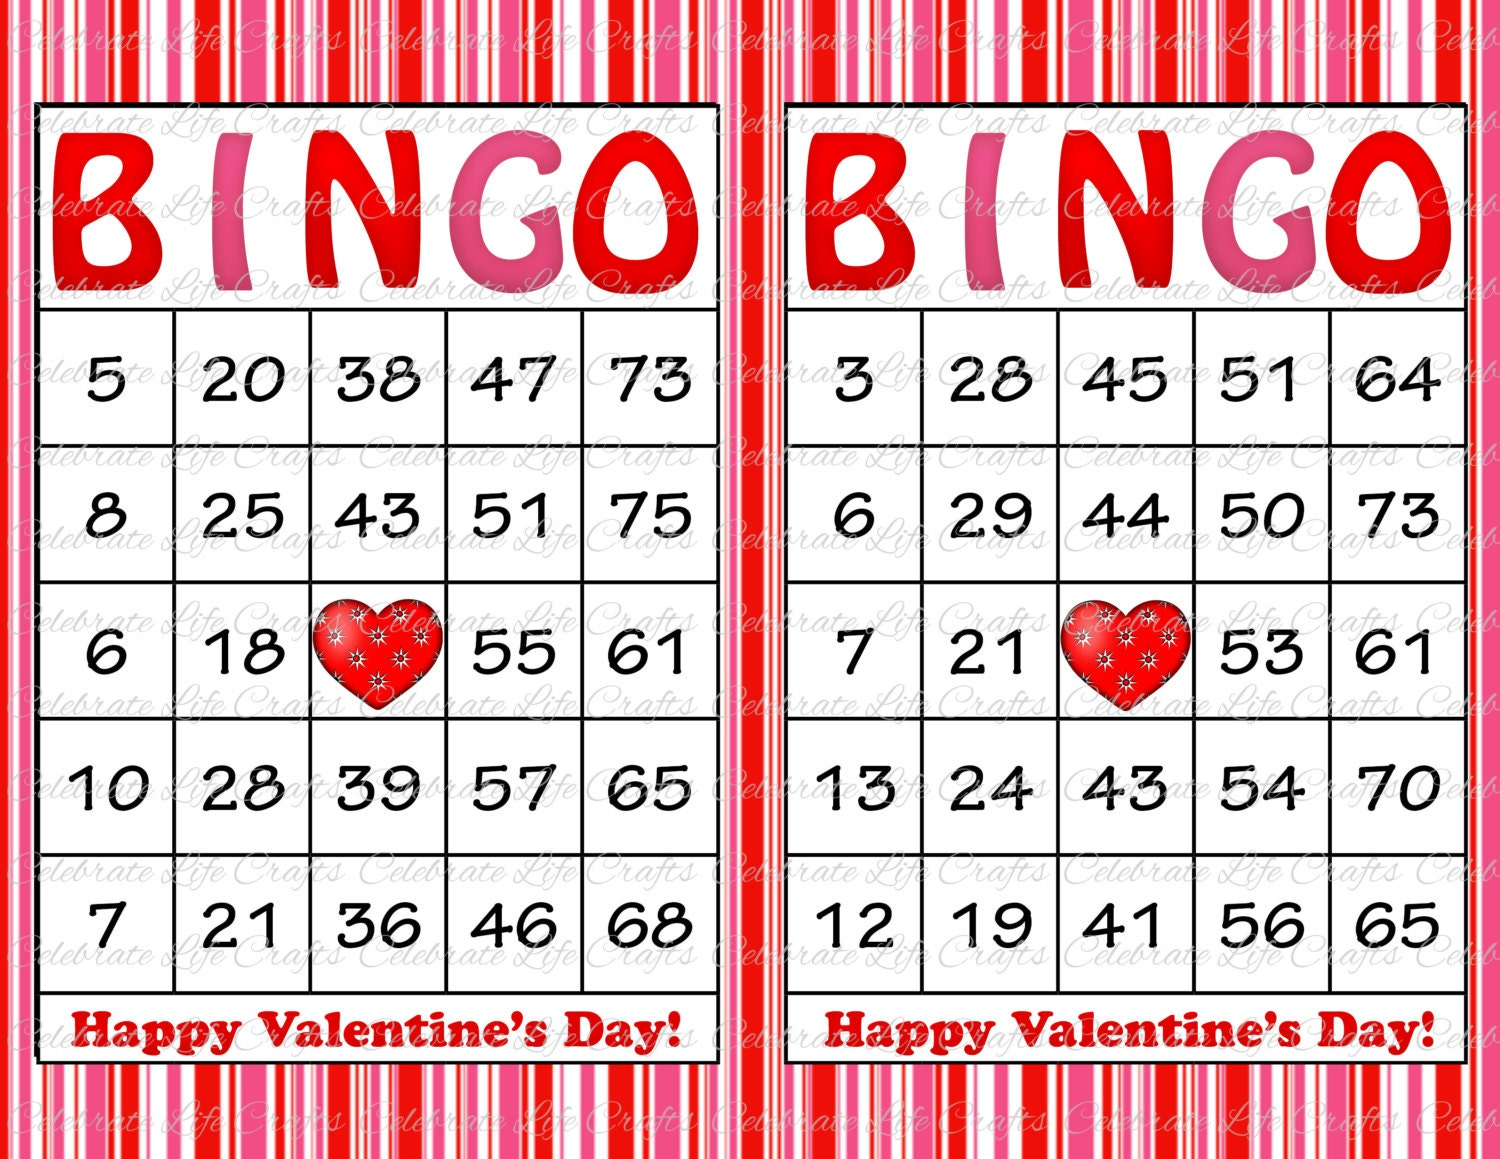 Sizzling image within printable valentines bingo cards